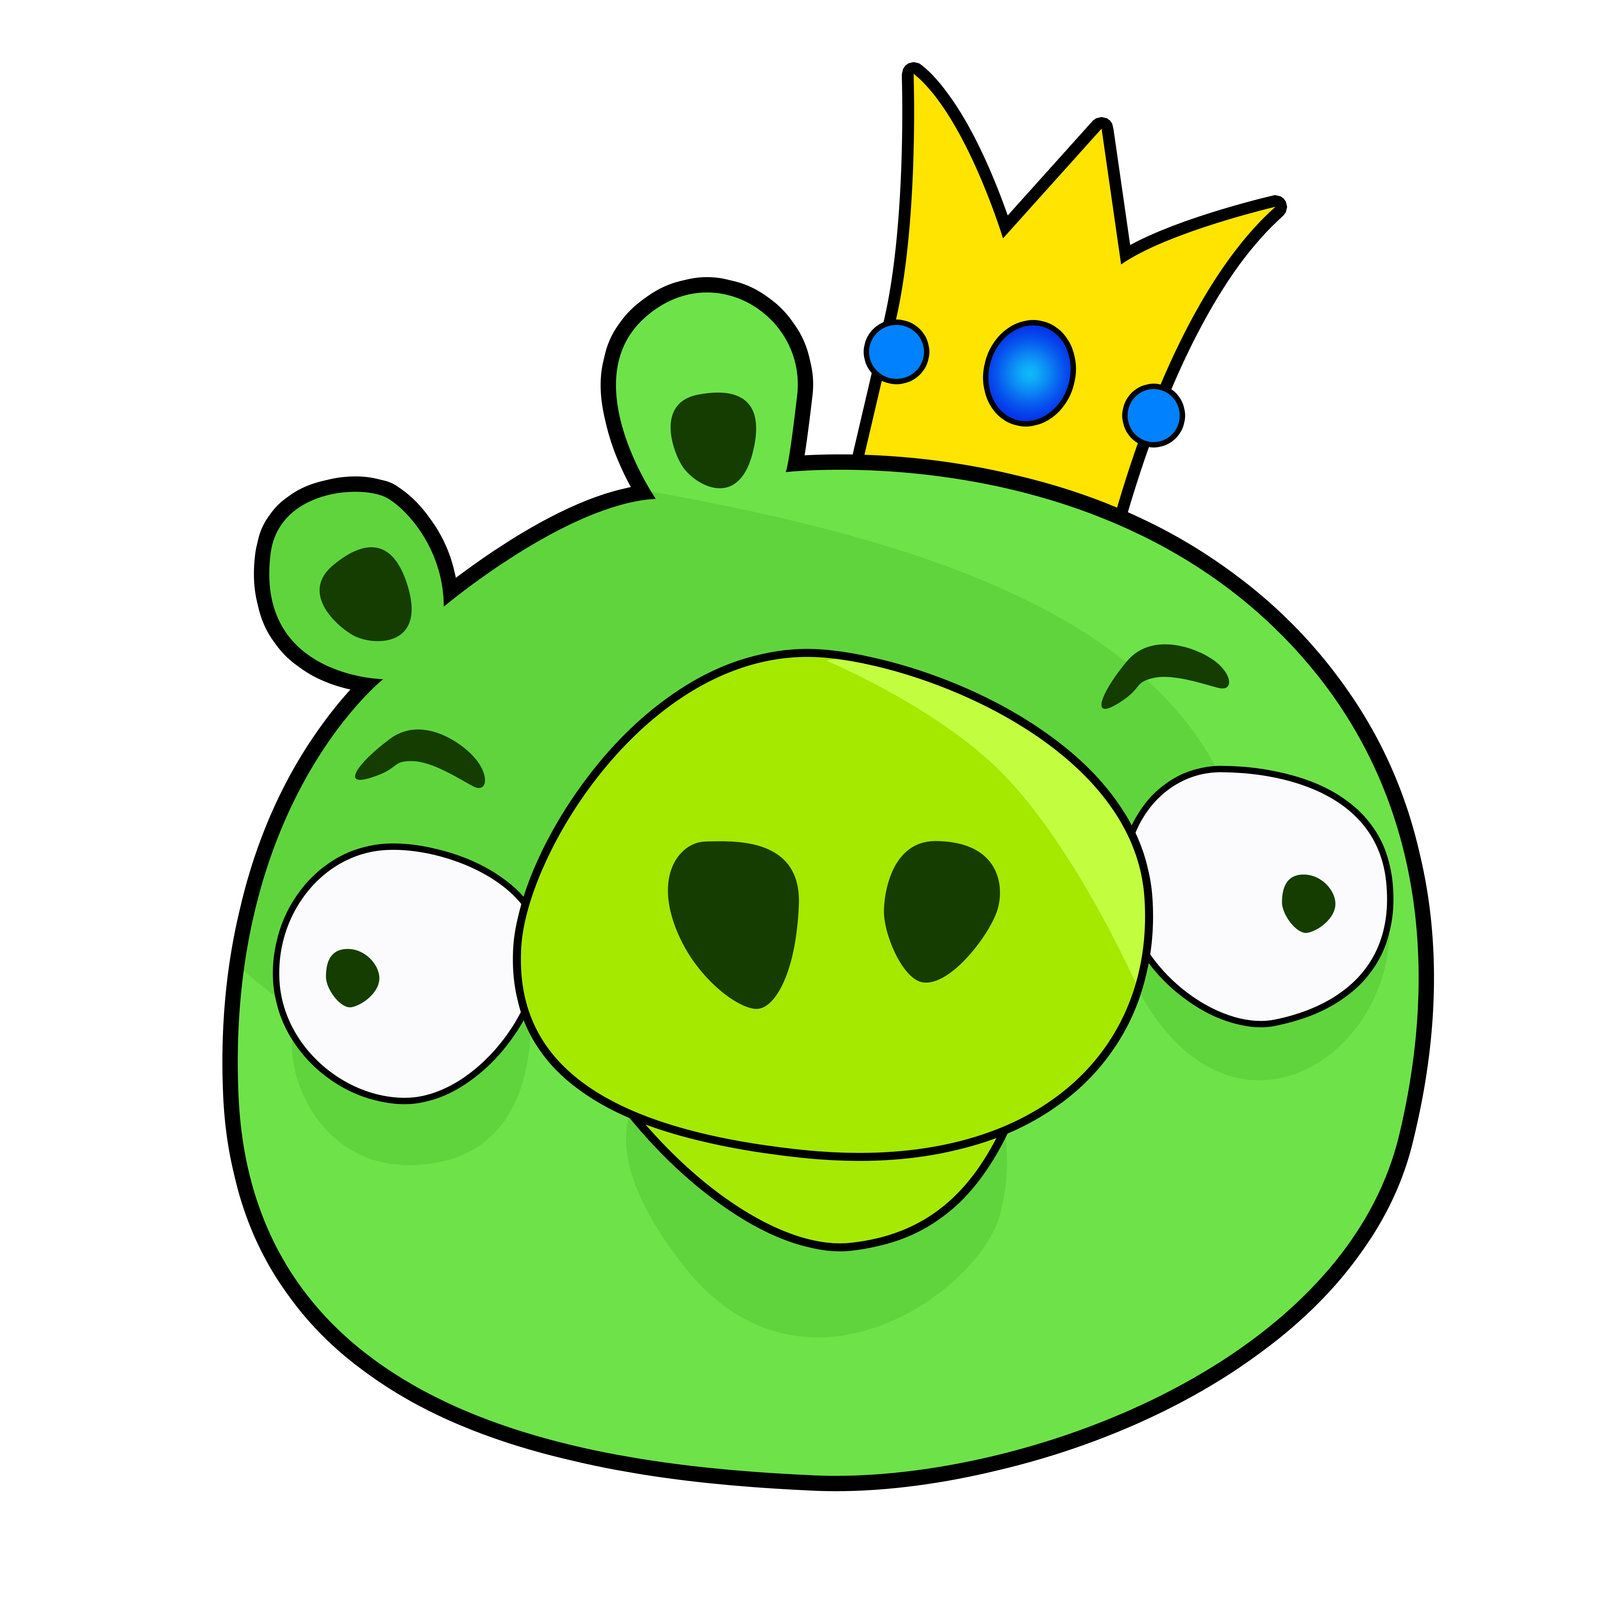 The Green Pig Angry Birds Pigs Angry Birds Characters Angry Bird Pictures